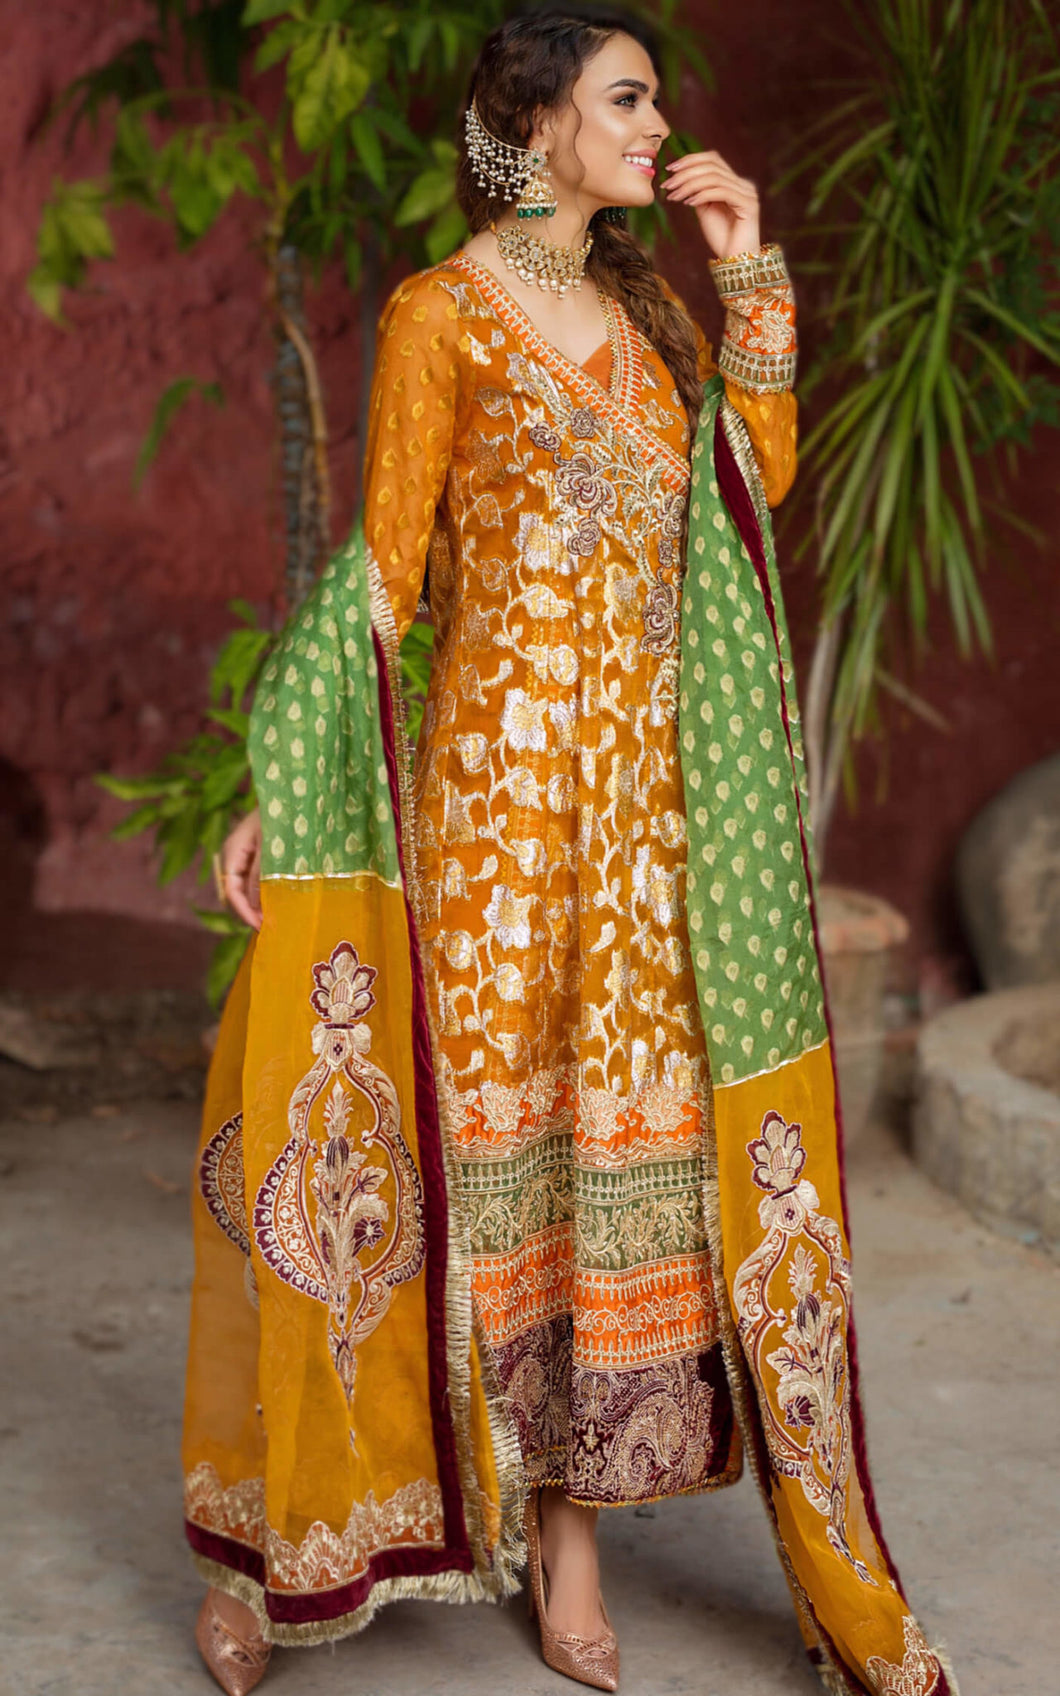 Buy ASIFA AND NABEEL | BANO ZN-05 -Pakistani Wedding Dress For Women at Our Online Pakistani Designer Boutique UK, Indian & Pakistani Dresses and ready-made Asian Clothes UK. ASIFA & NABEEL-BANO ZN-05 -Pakistani Wedding Dress Embroidered Chiffon Collection 2020 & Indian Party Wear Outfits USA on SALE at Lebaasonline